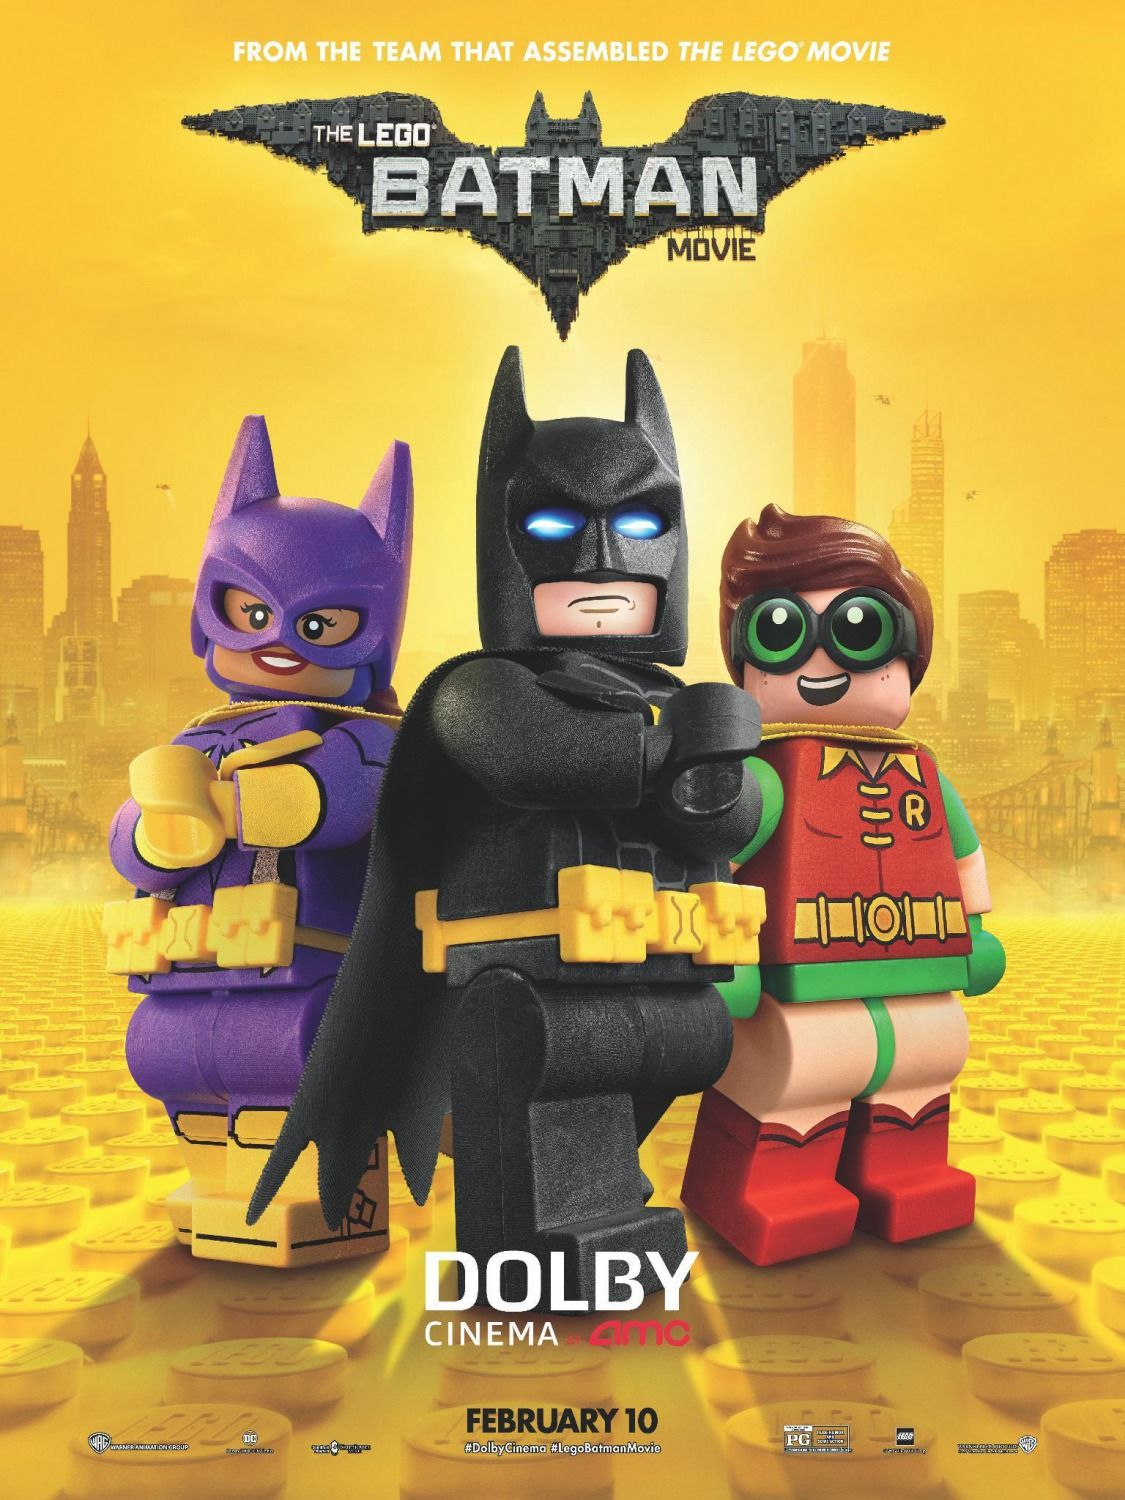 Return to the main poster page for the lego batman movie 26 of 27